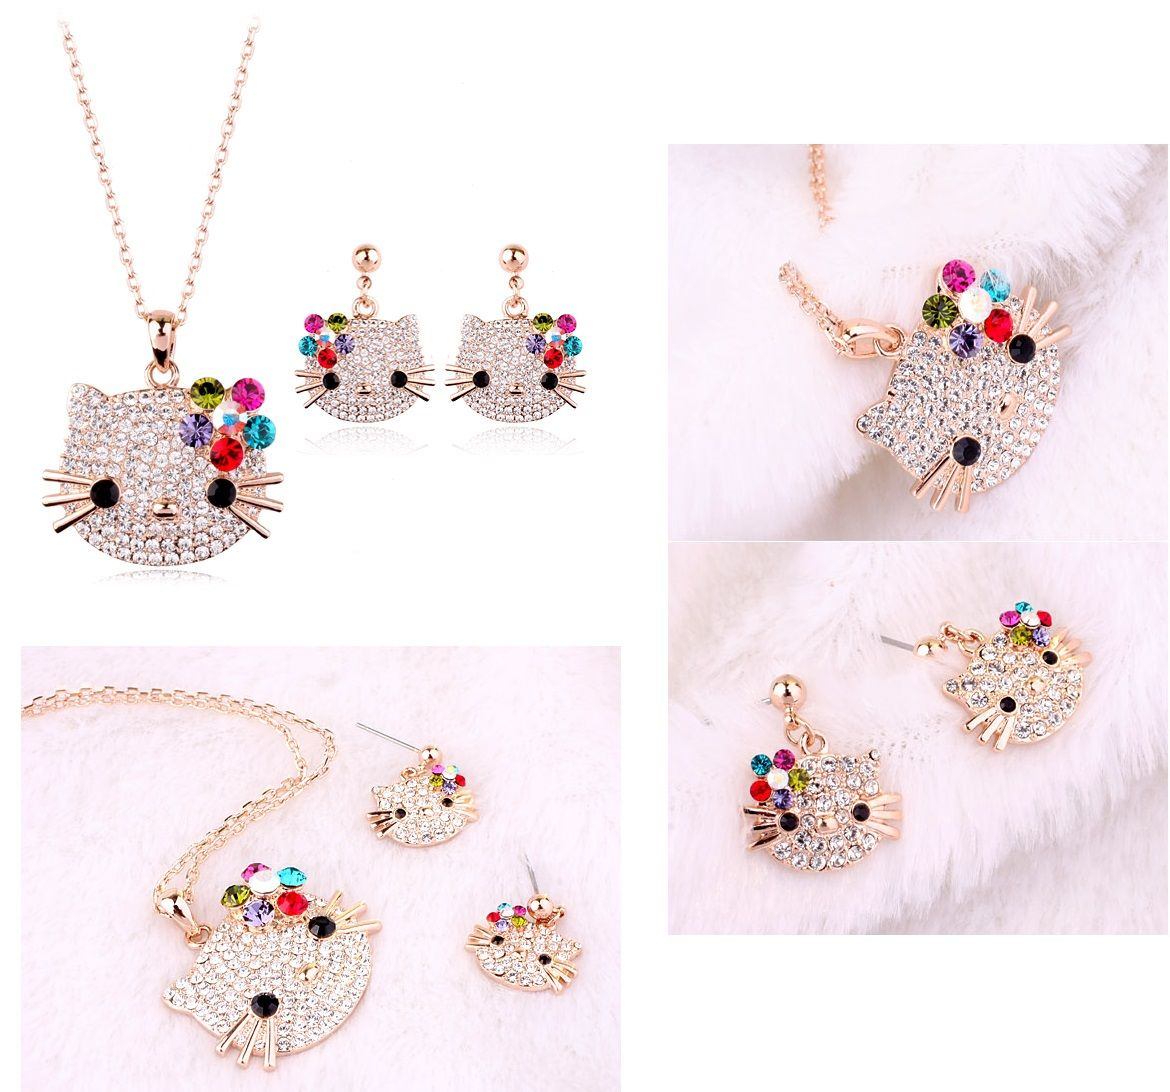 Crystal bling hello kitty necklace and earrings set mijn kids